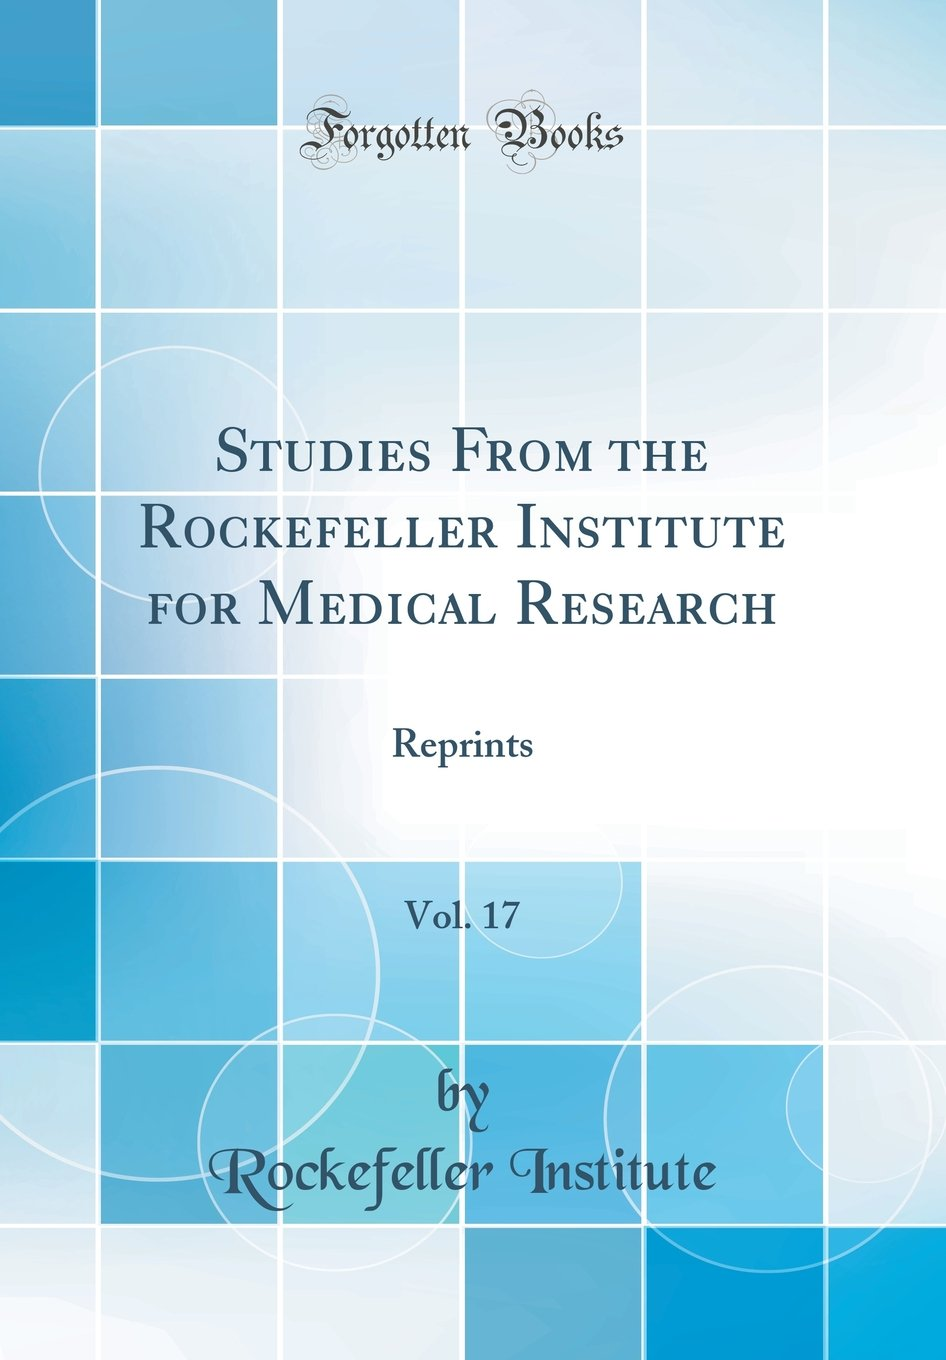 Studies From the Rockefeller Institute for Medical Research, Vol. 17: Reprints (Classic Reprint) pdf